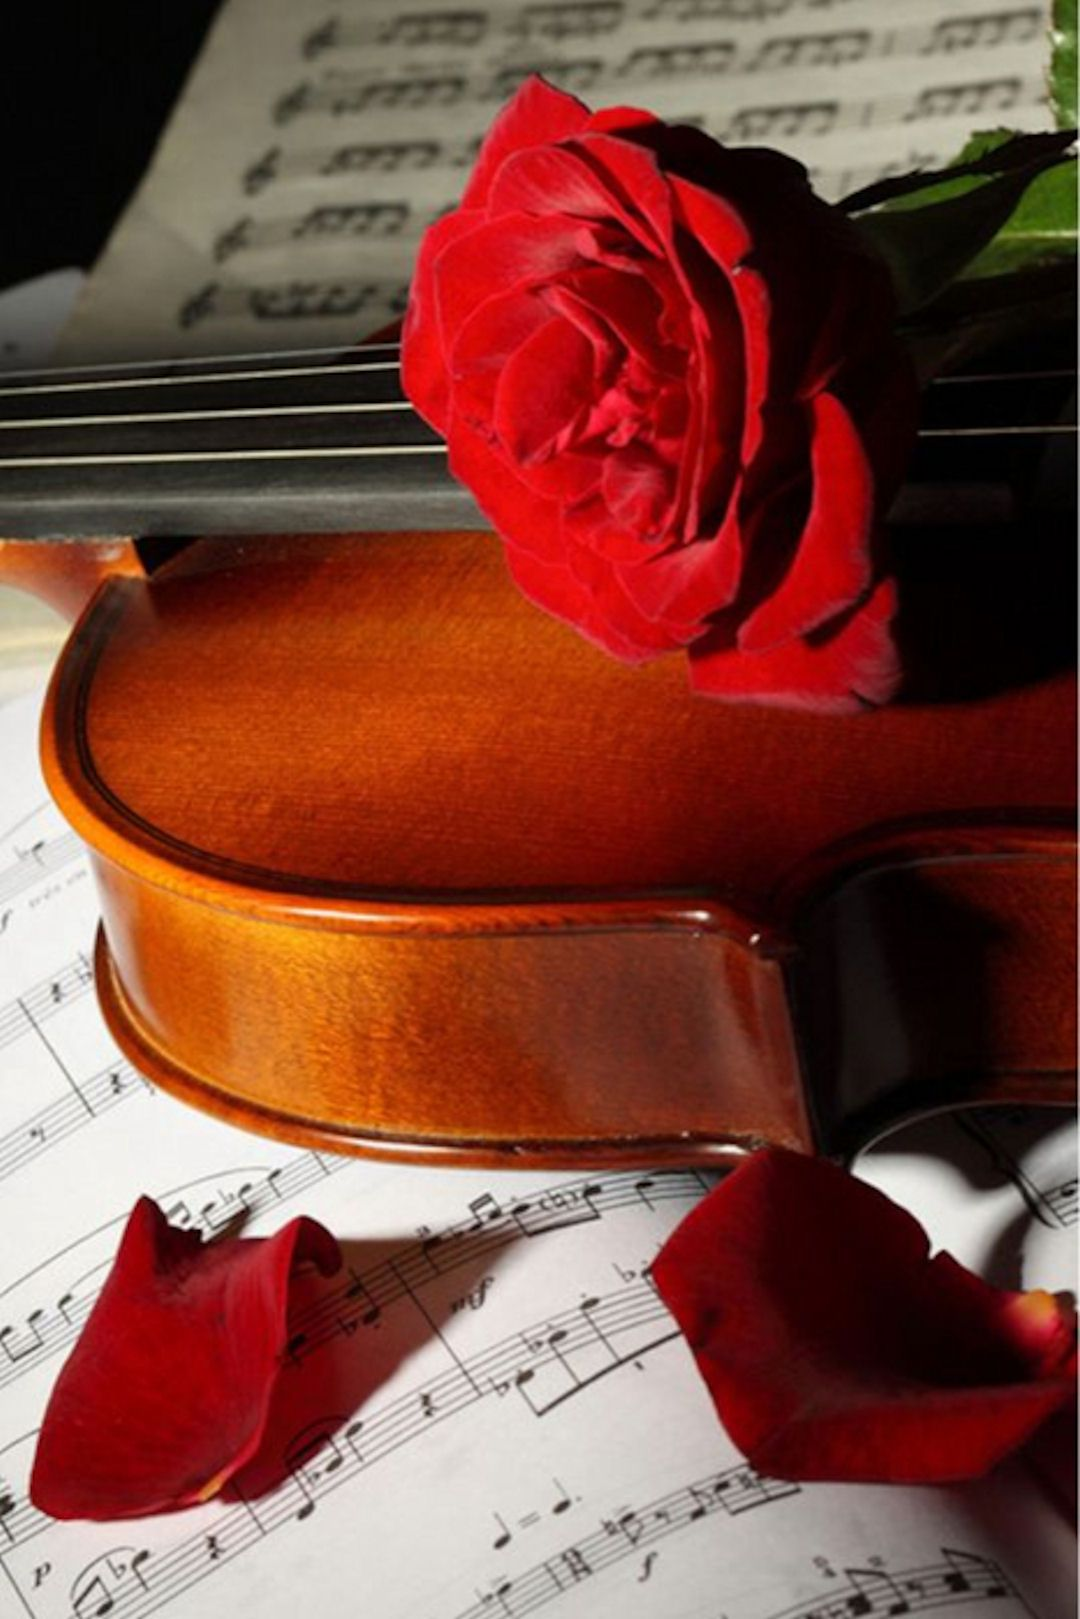 Rose Violin And Sheet Music Mixtapecoverking Com